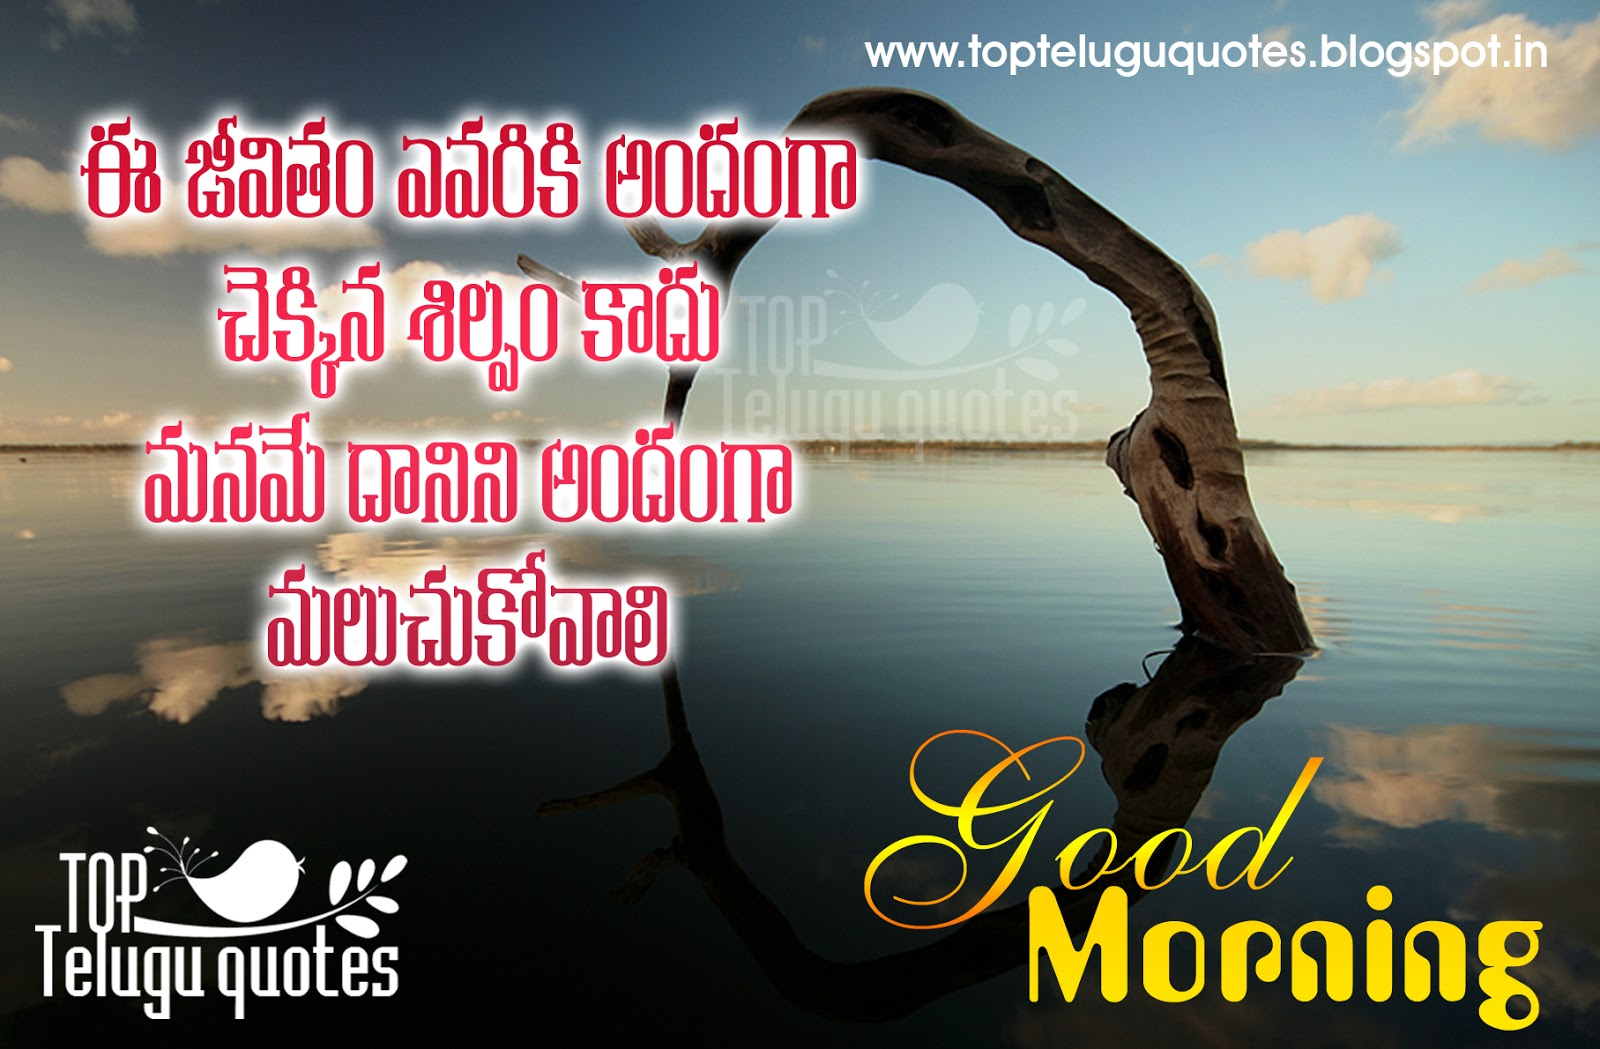 farmer telugu quotes